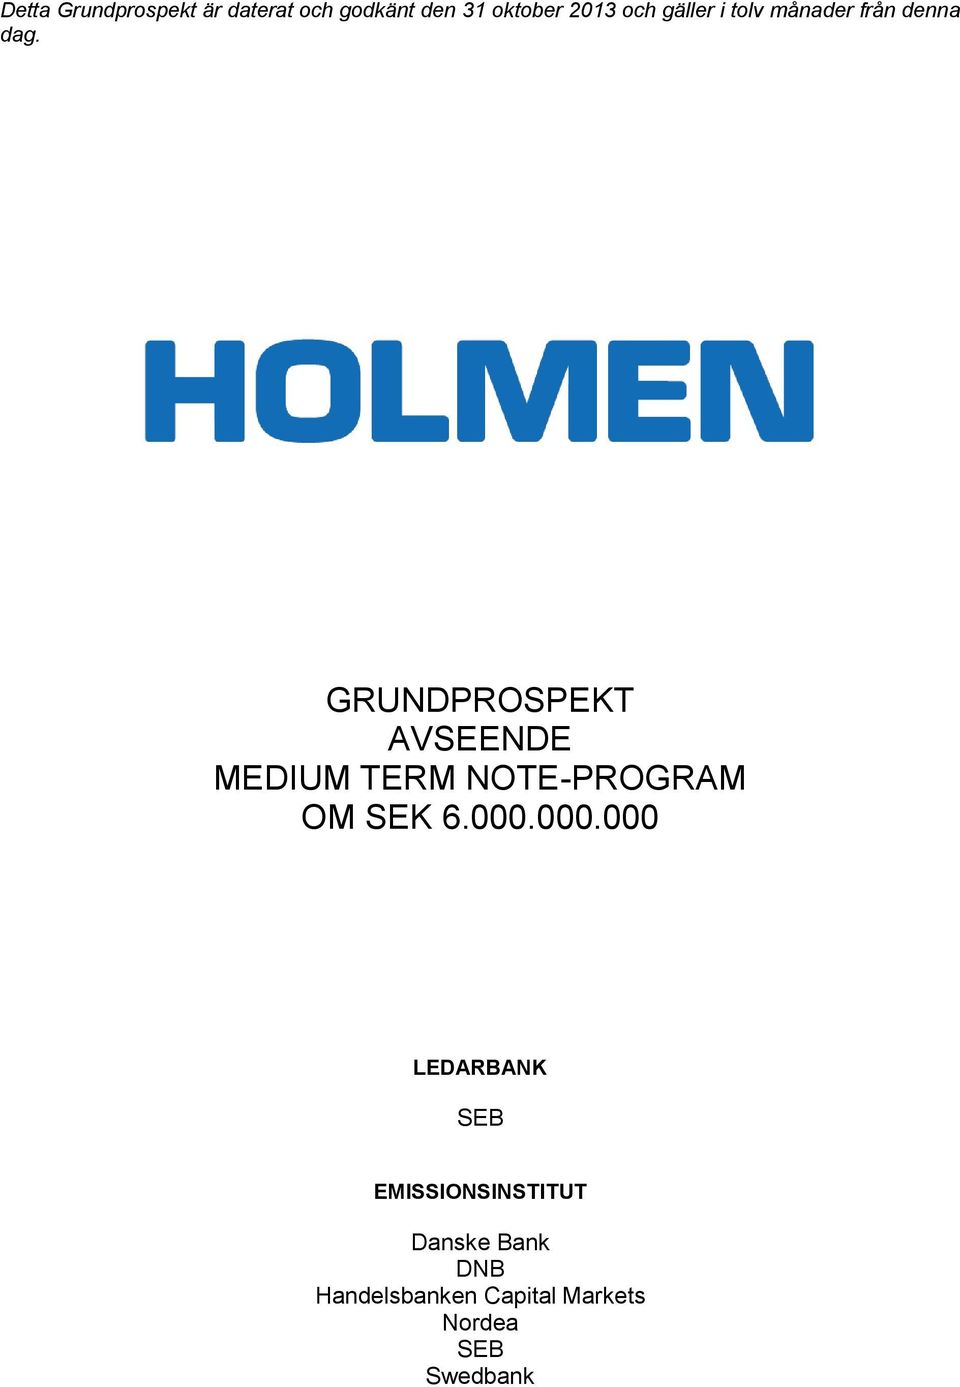 GRUNDPROSPEKT AVSEENDE MEDIUM TERM NOTE-PROGRAM OM SEK 6.000.